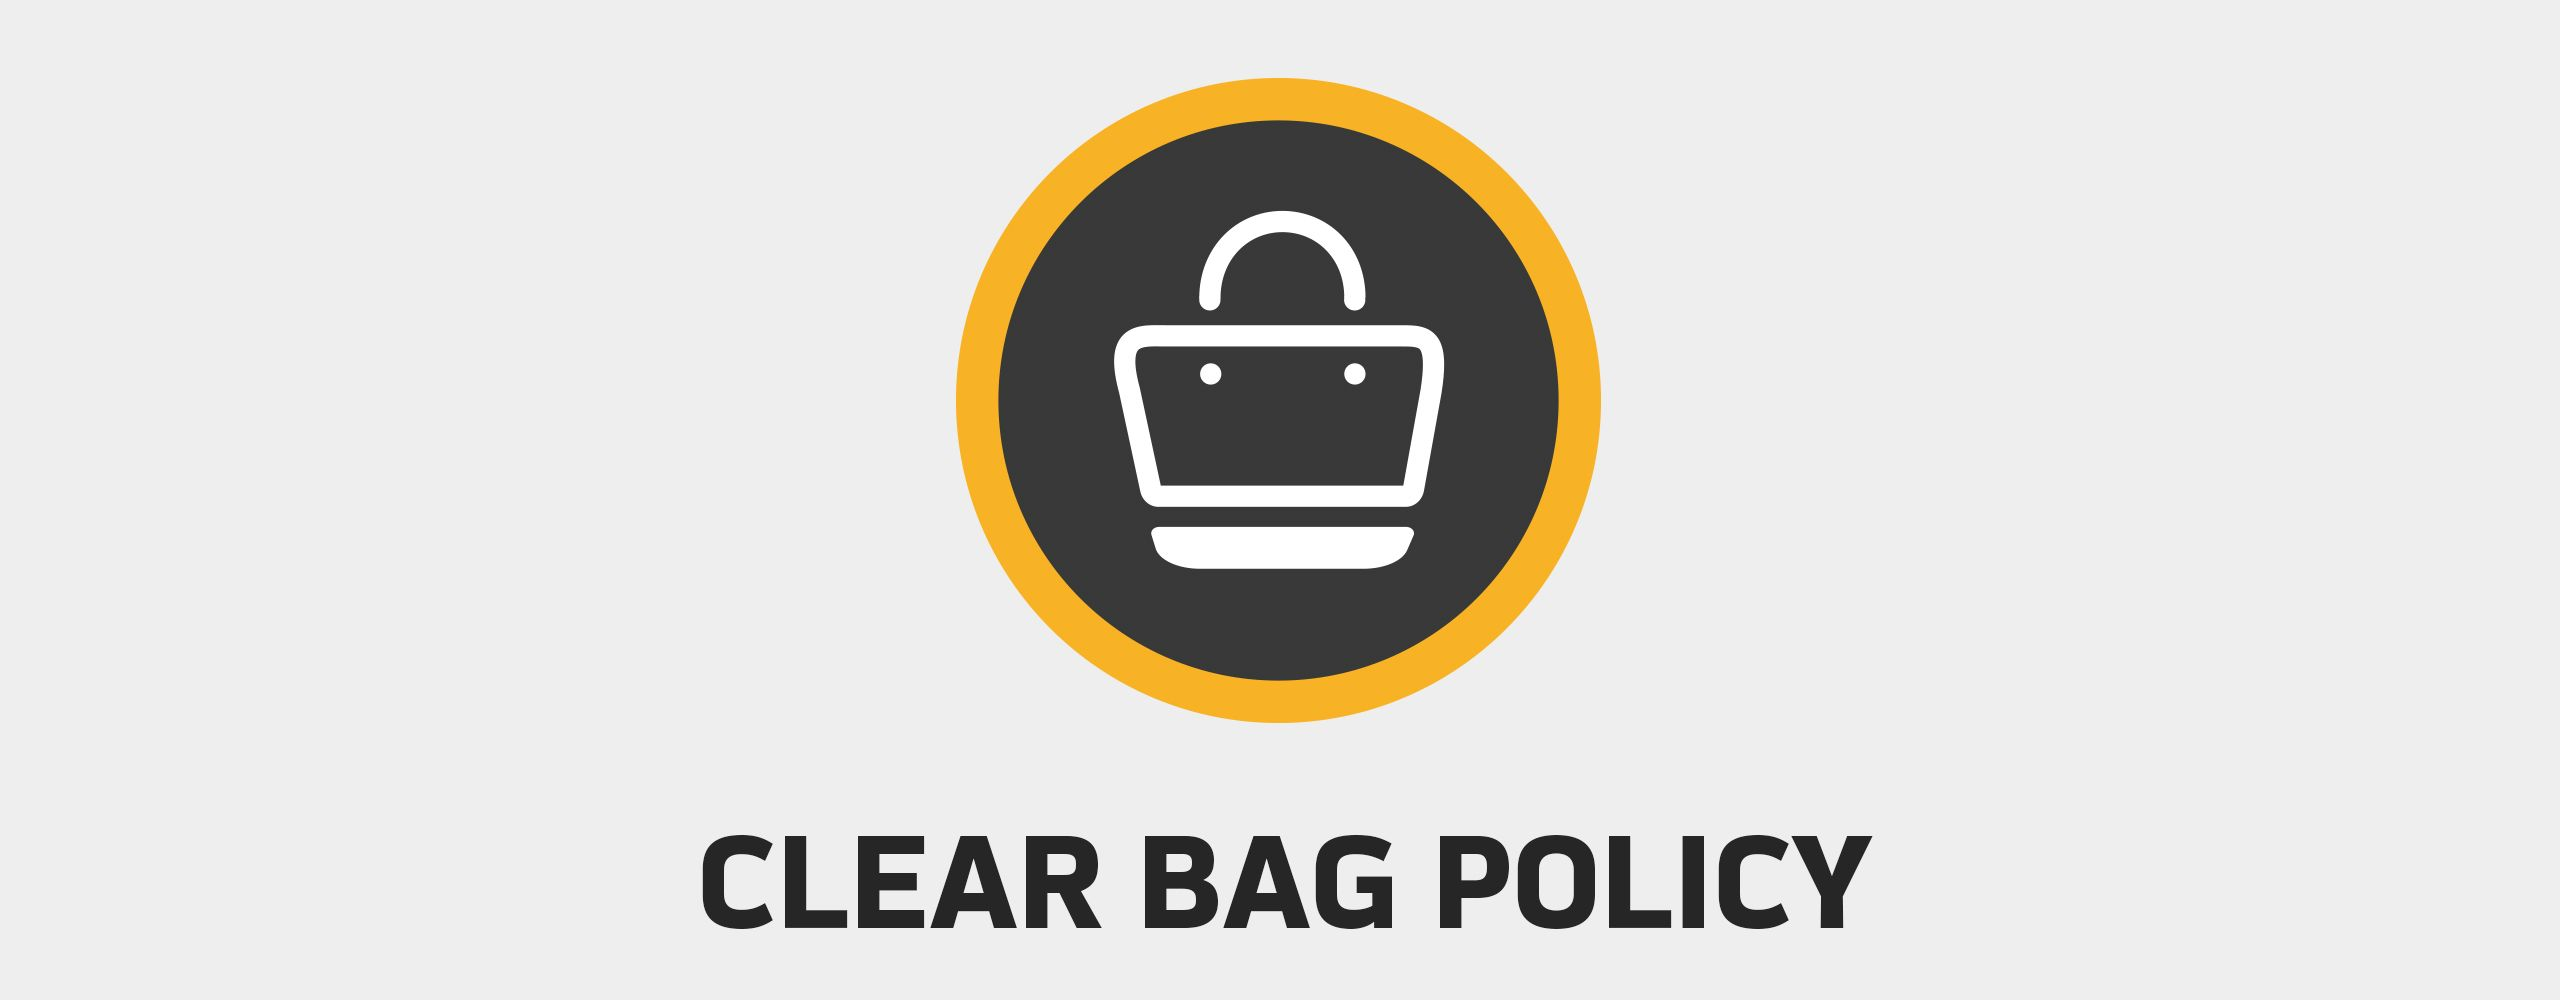 ClearBag